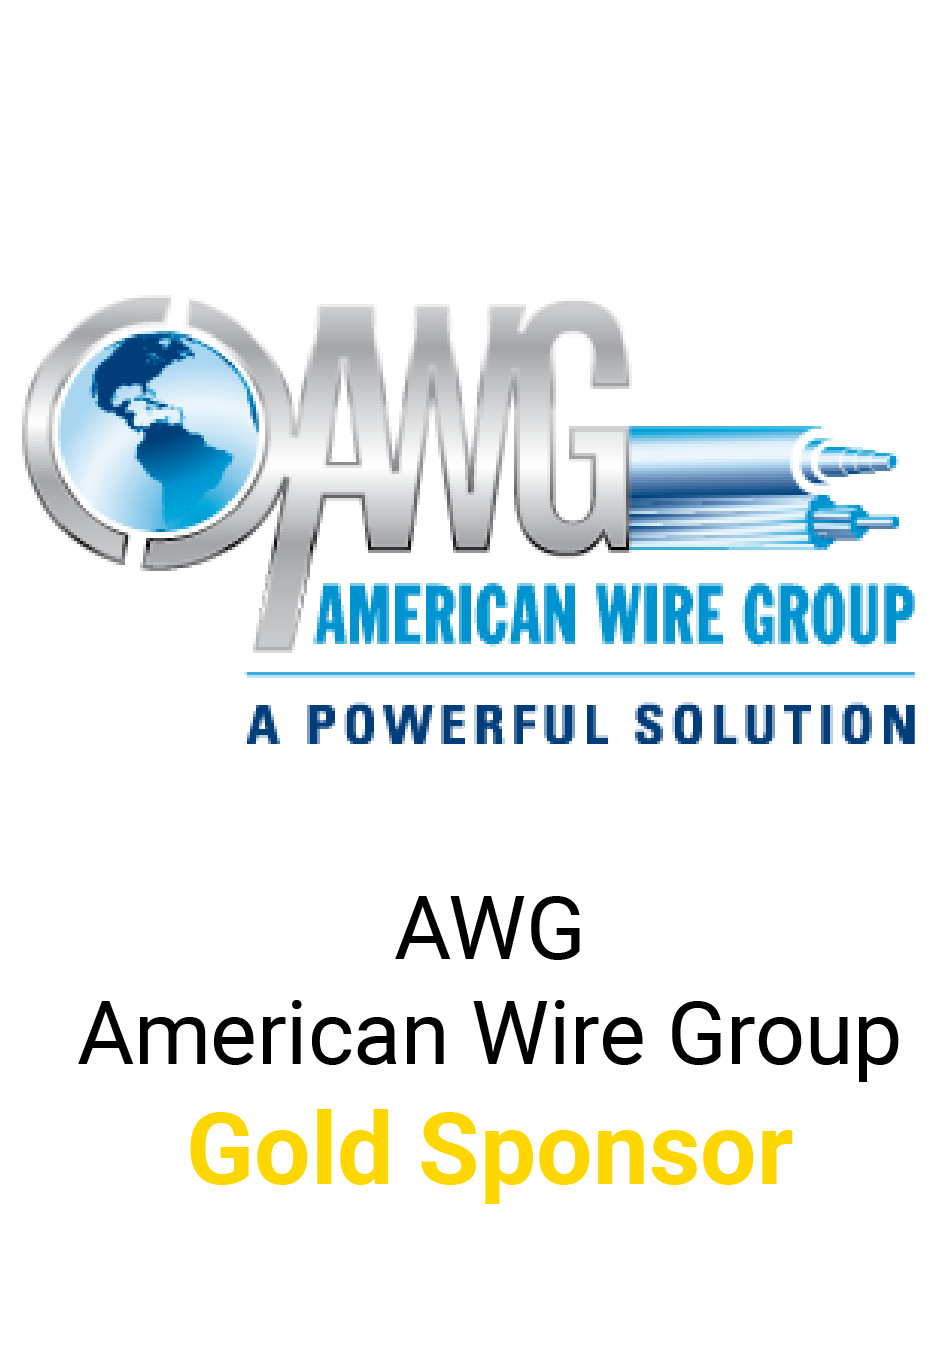 AWG American Wire Group